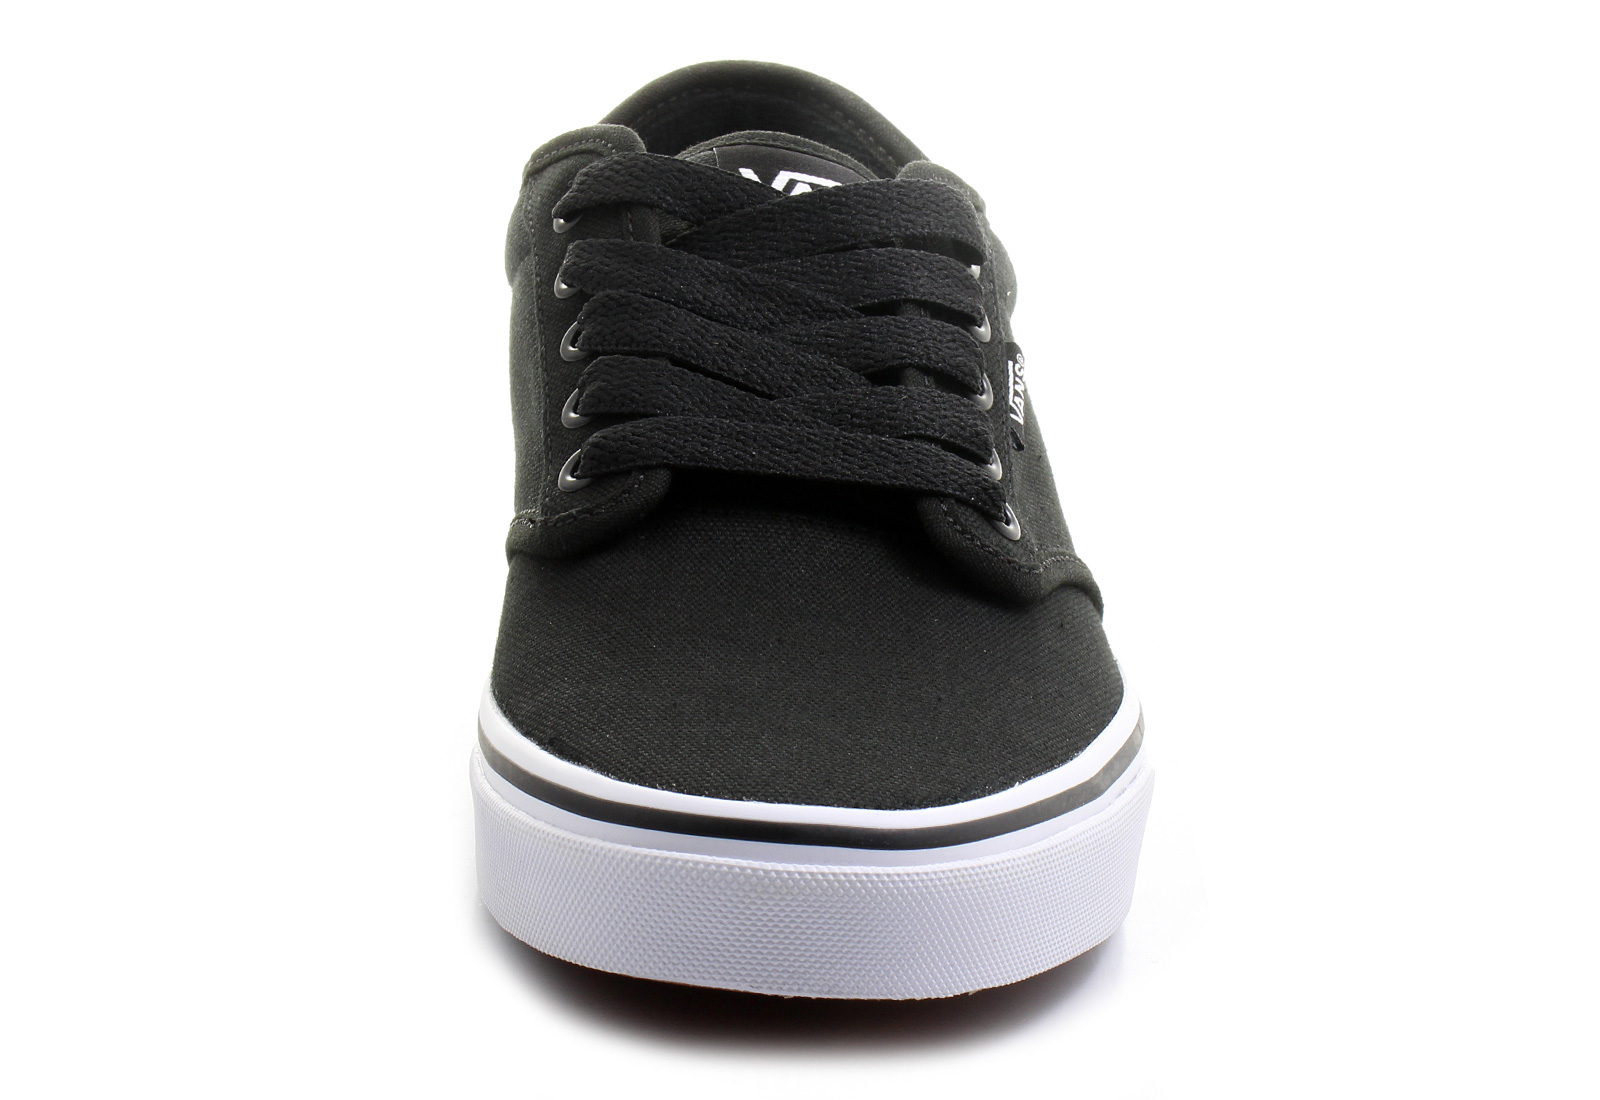 41dce8fcb04 Vans Shoes - Mn Atwood - VTUY187 - Online shop for sneakers